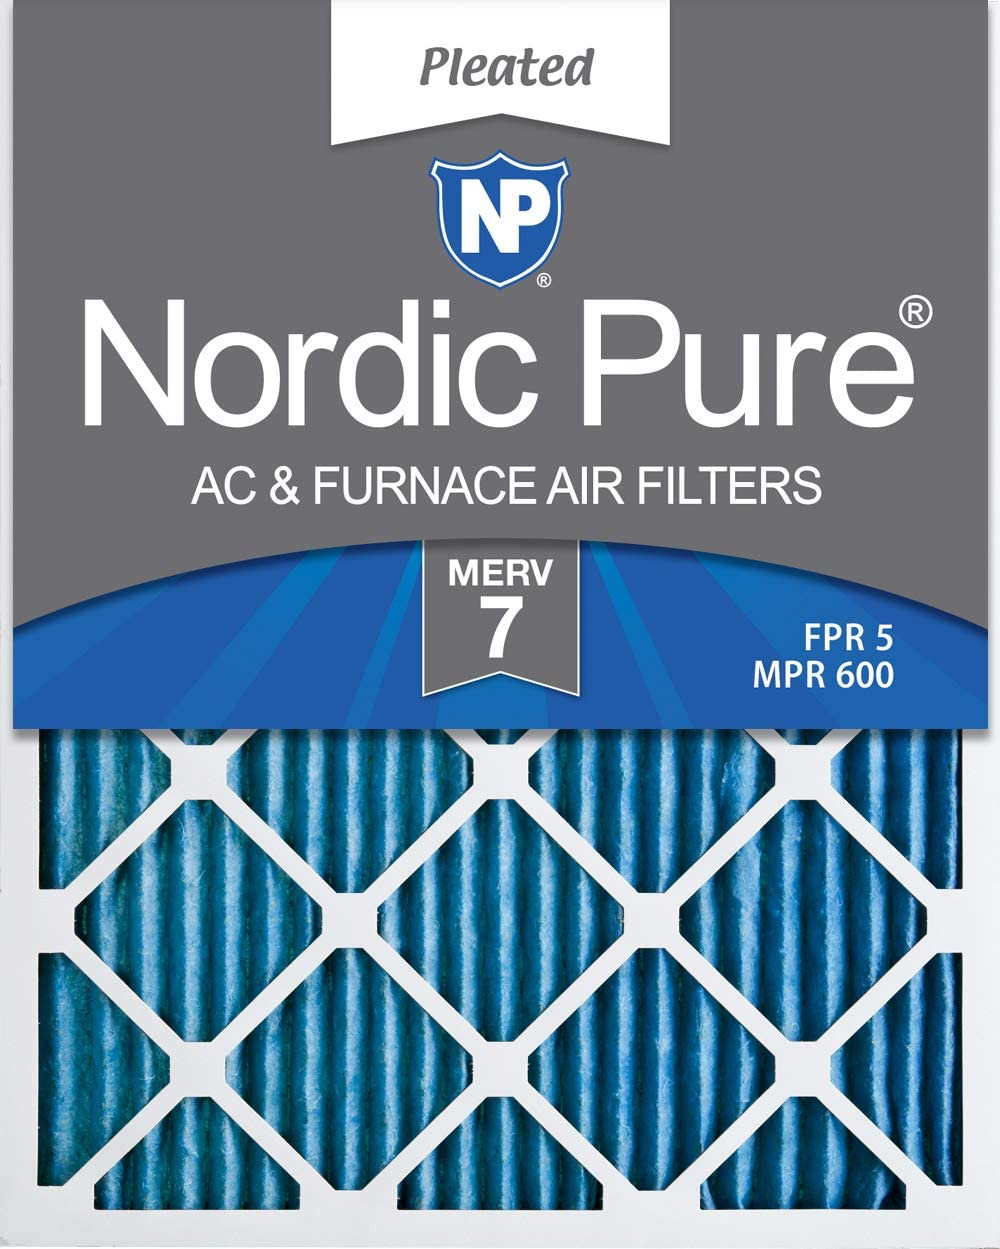 12 PACK 12 PACK Nordic Pure 20x24x1 Pure Green Eco-Friendly AC Furnace Air Filters